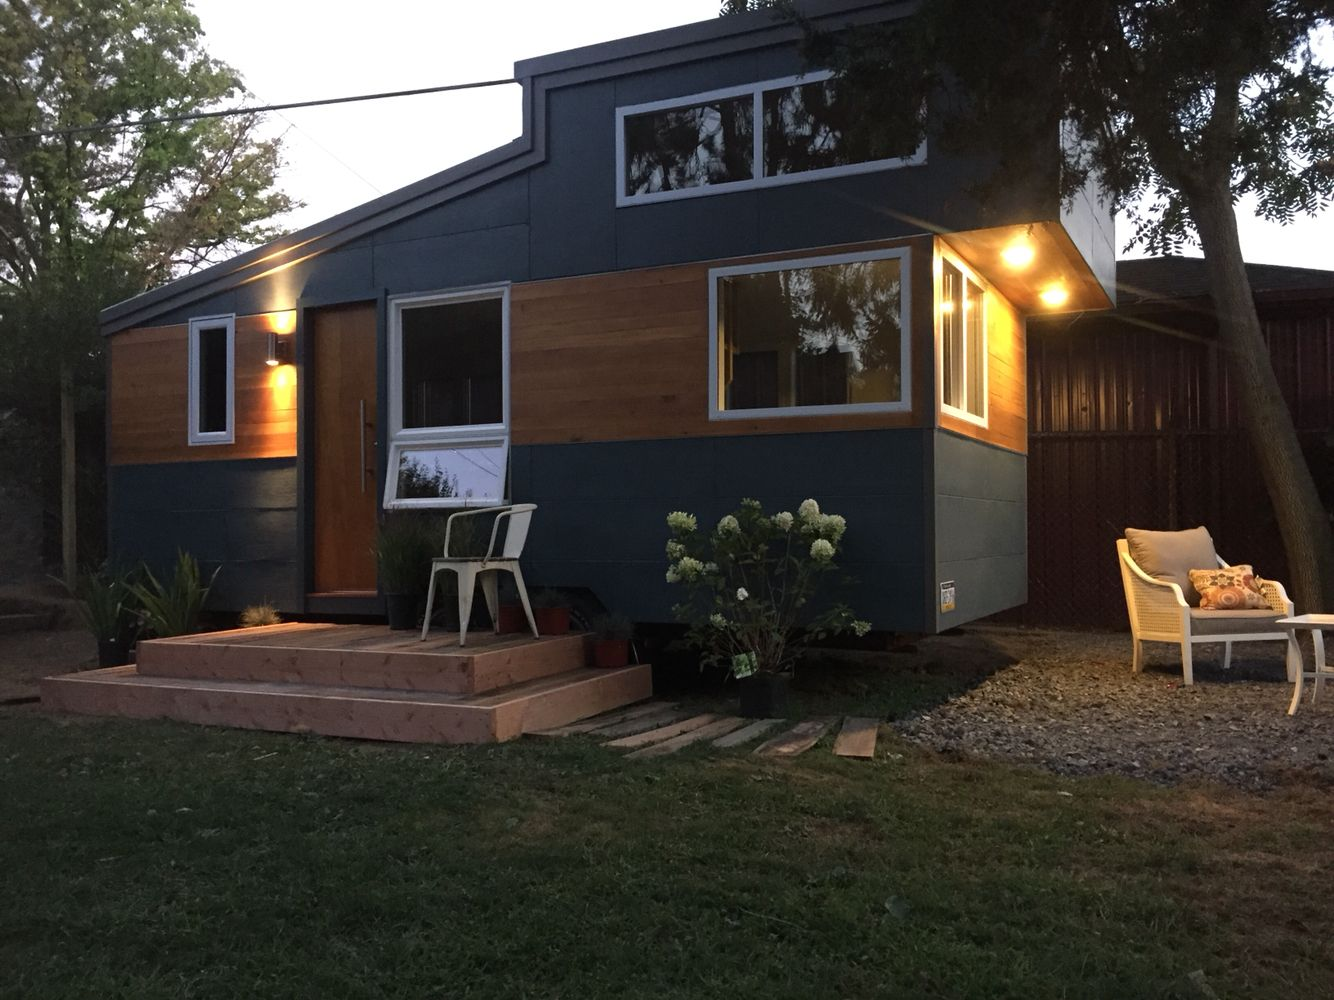 Modern tiny house on wheels. As a backyard escape in ...